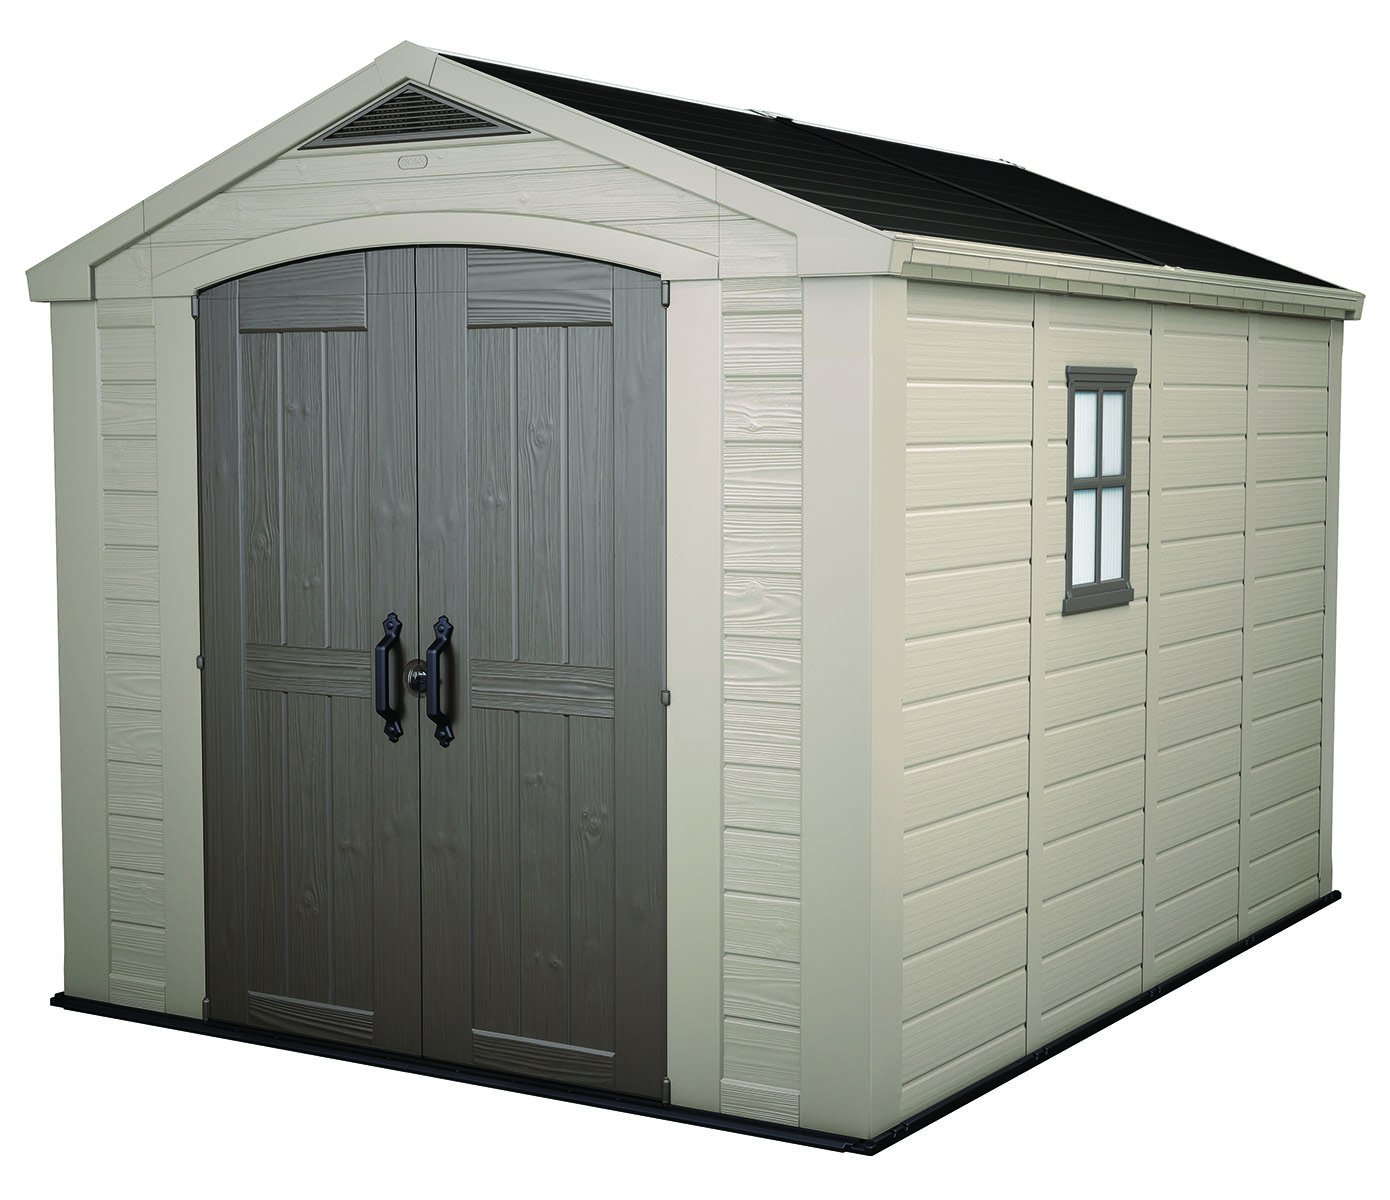 amazoncom keter factor large 8 x 11 ft resin outdoor yard garden storage shed taupebrown storage sheds patio lawn garden